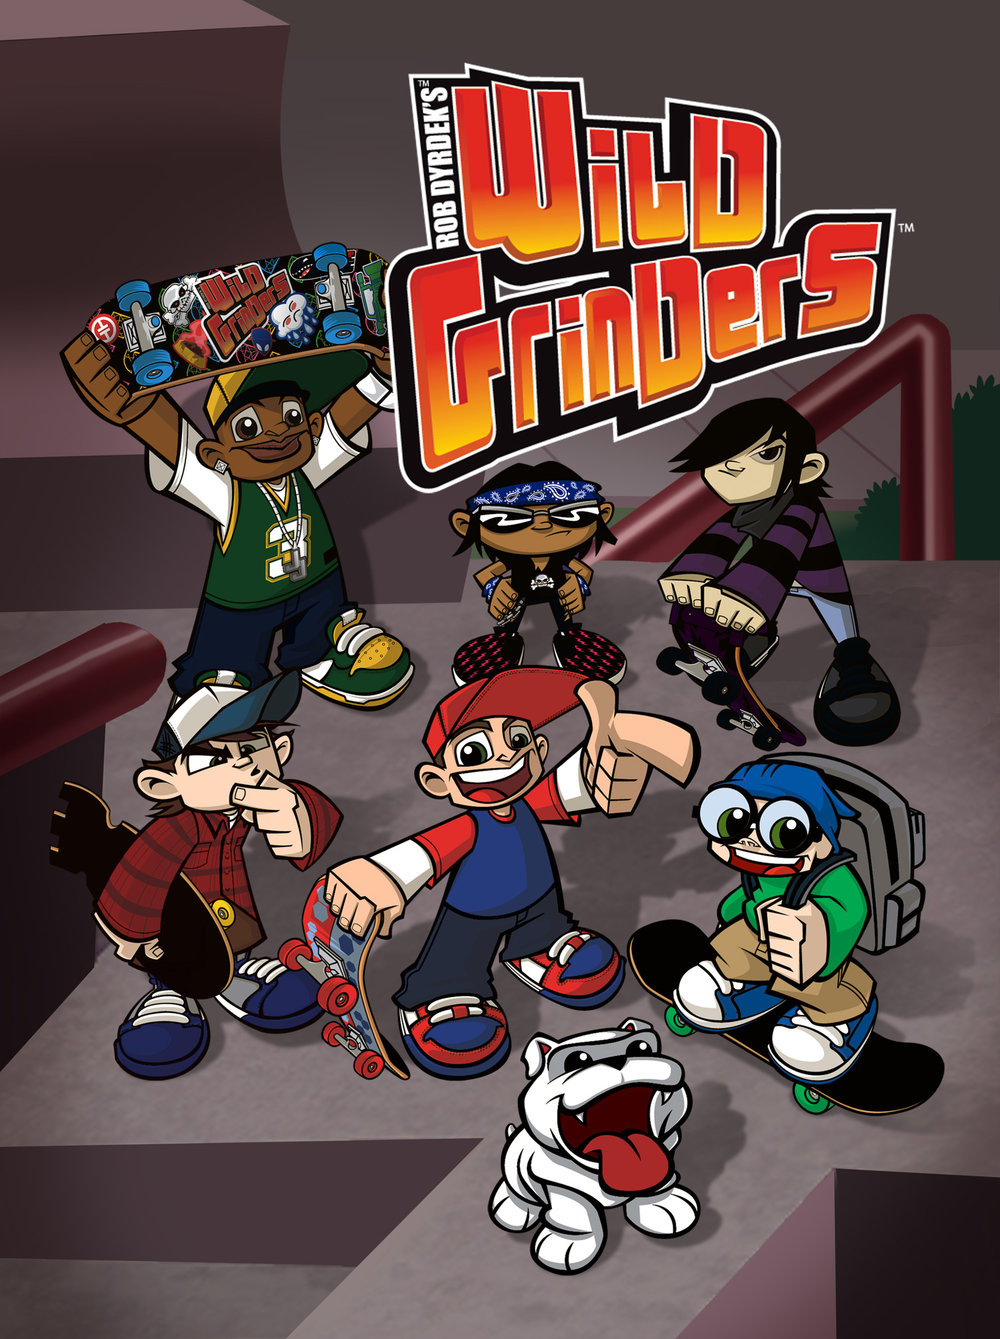 WILD GRINDERS - (Series 1)Year 2012Duration 52 X 11 minsProduction Partners Home Plate Entertainment, Telegael, Agogo Corporation, Copernicus StudiosGenre 2D Animation